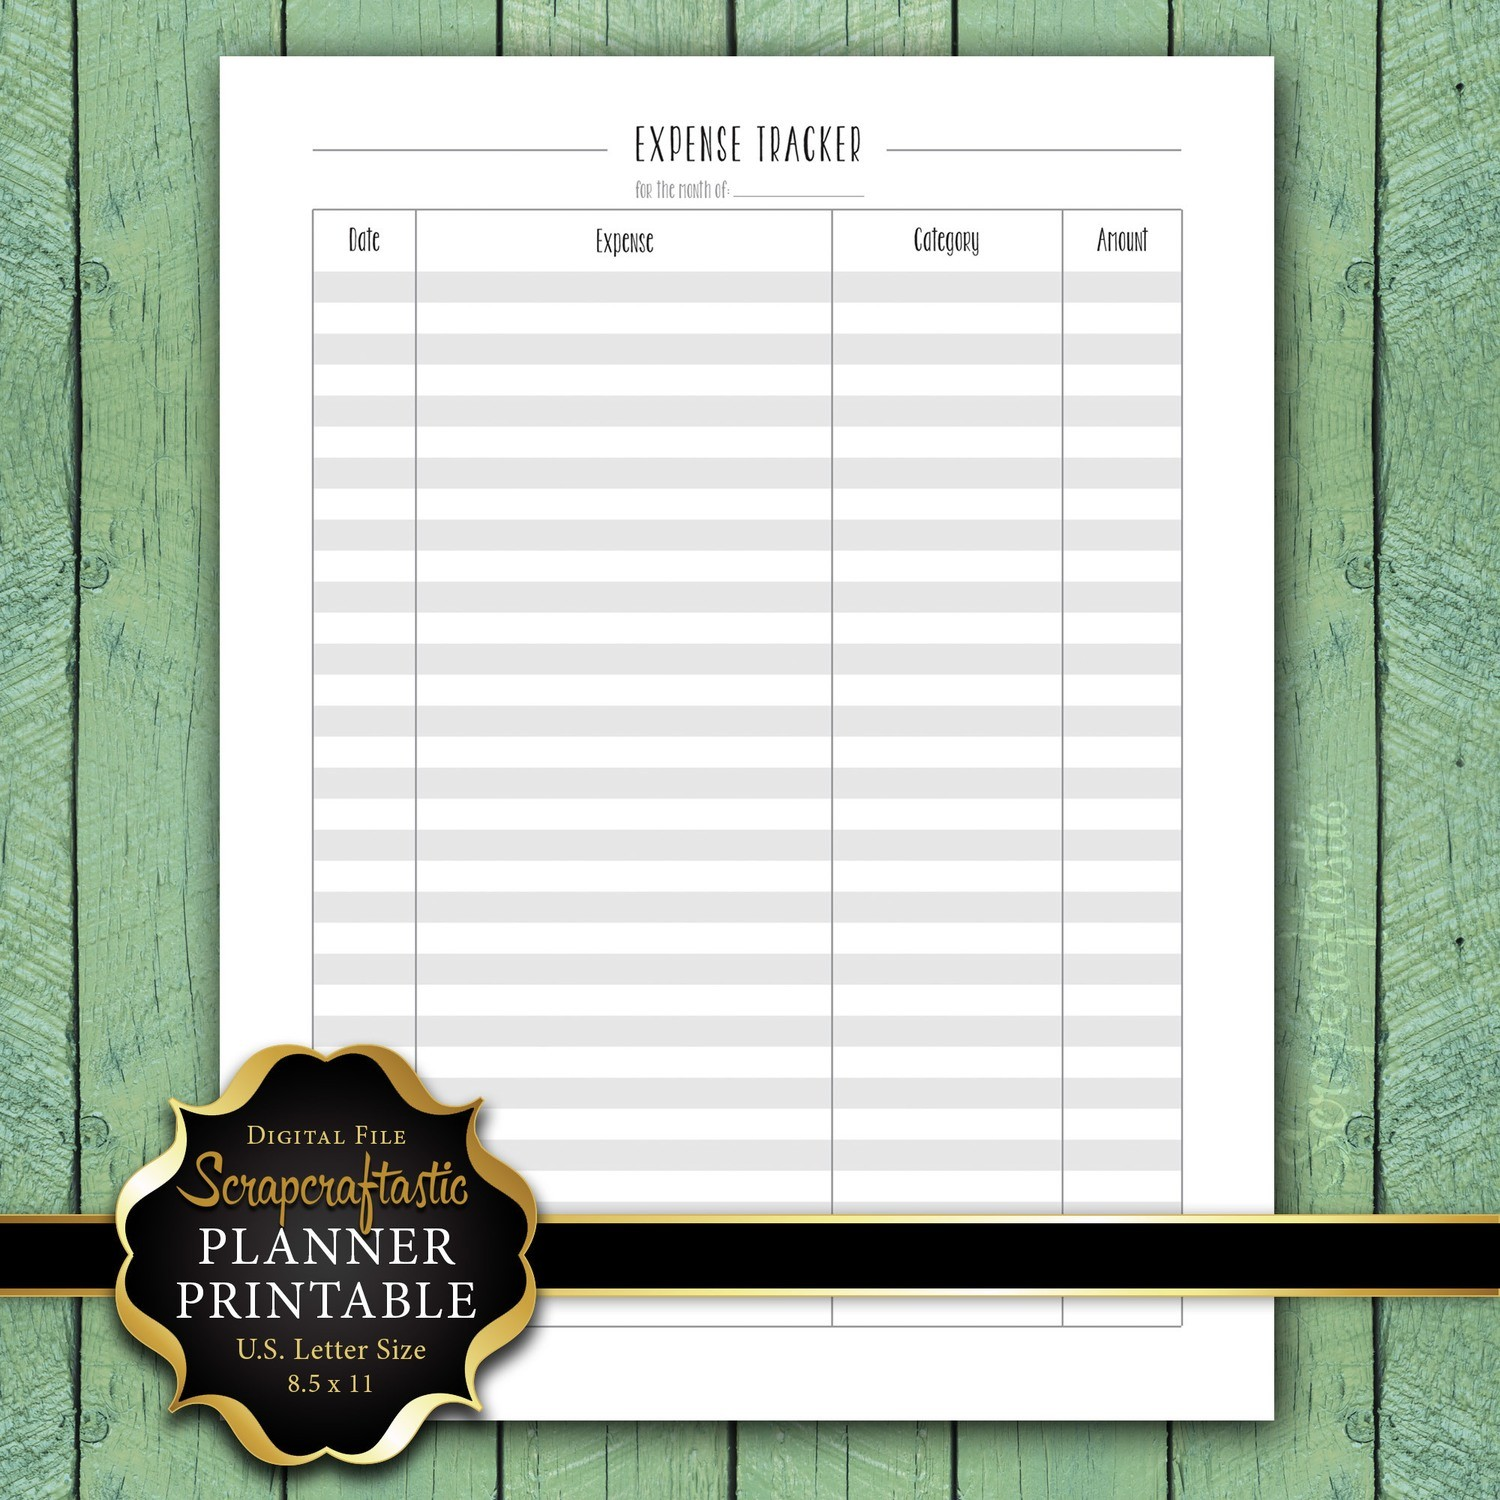 Expense Tracker Letter Size Planner Printable